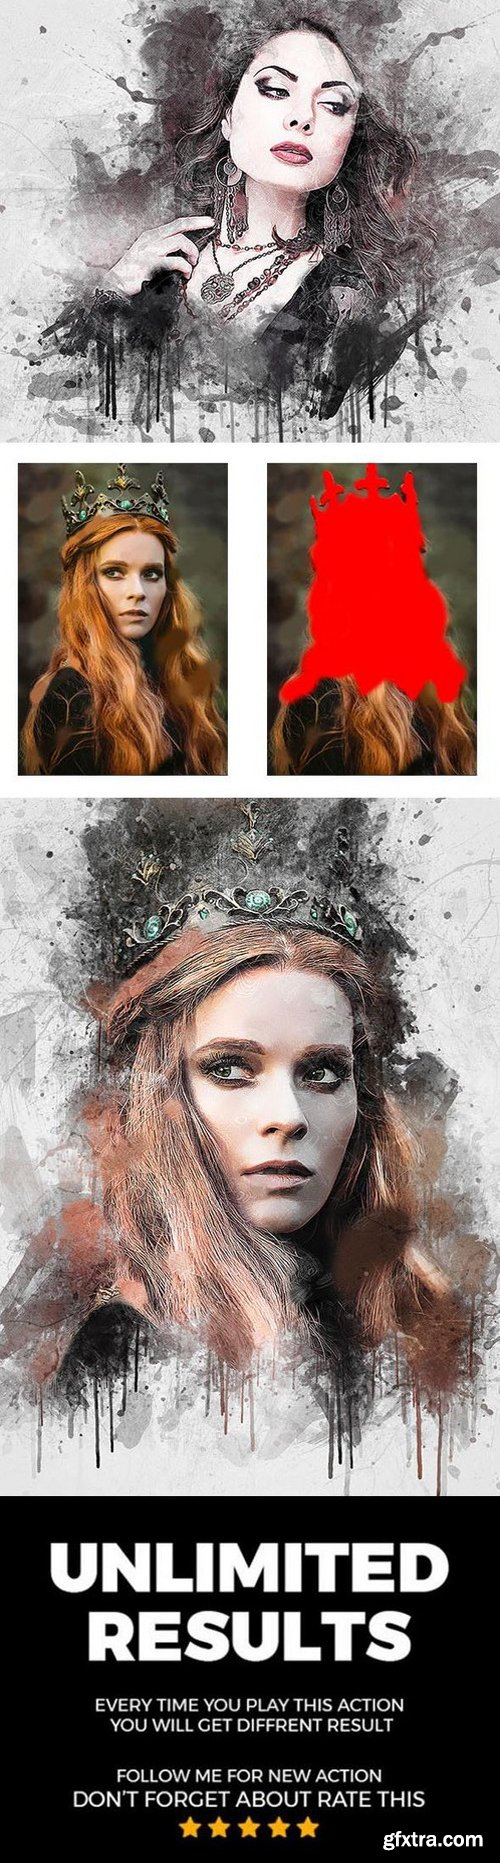 Graphicriver - Artistic 4 In 1 Photoshop Action Bundle 22555017